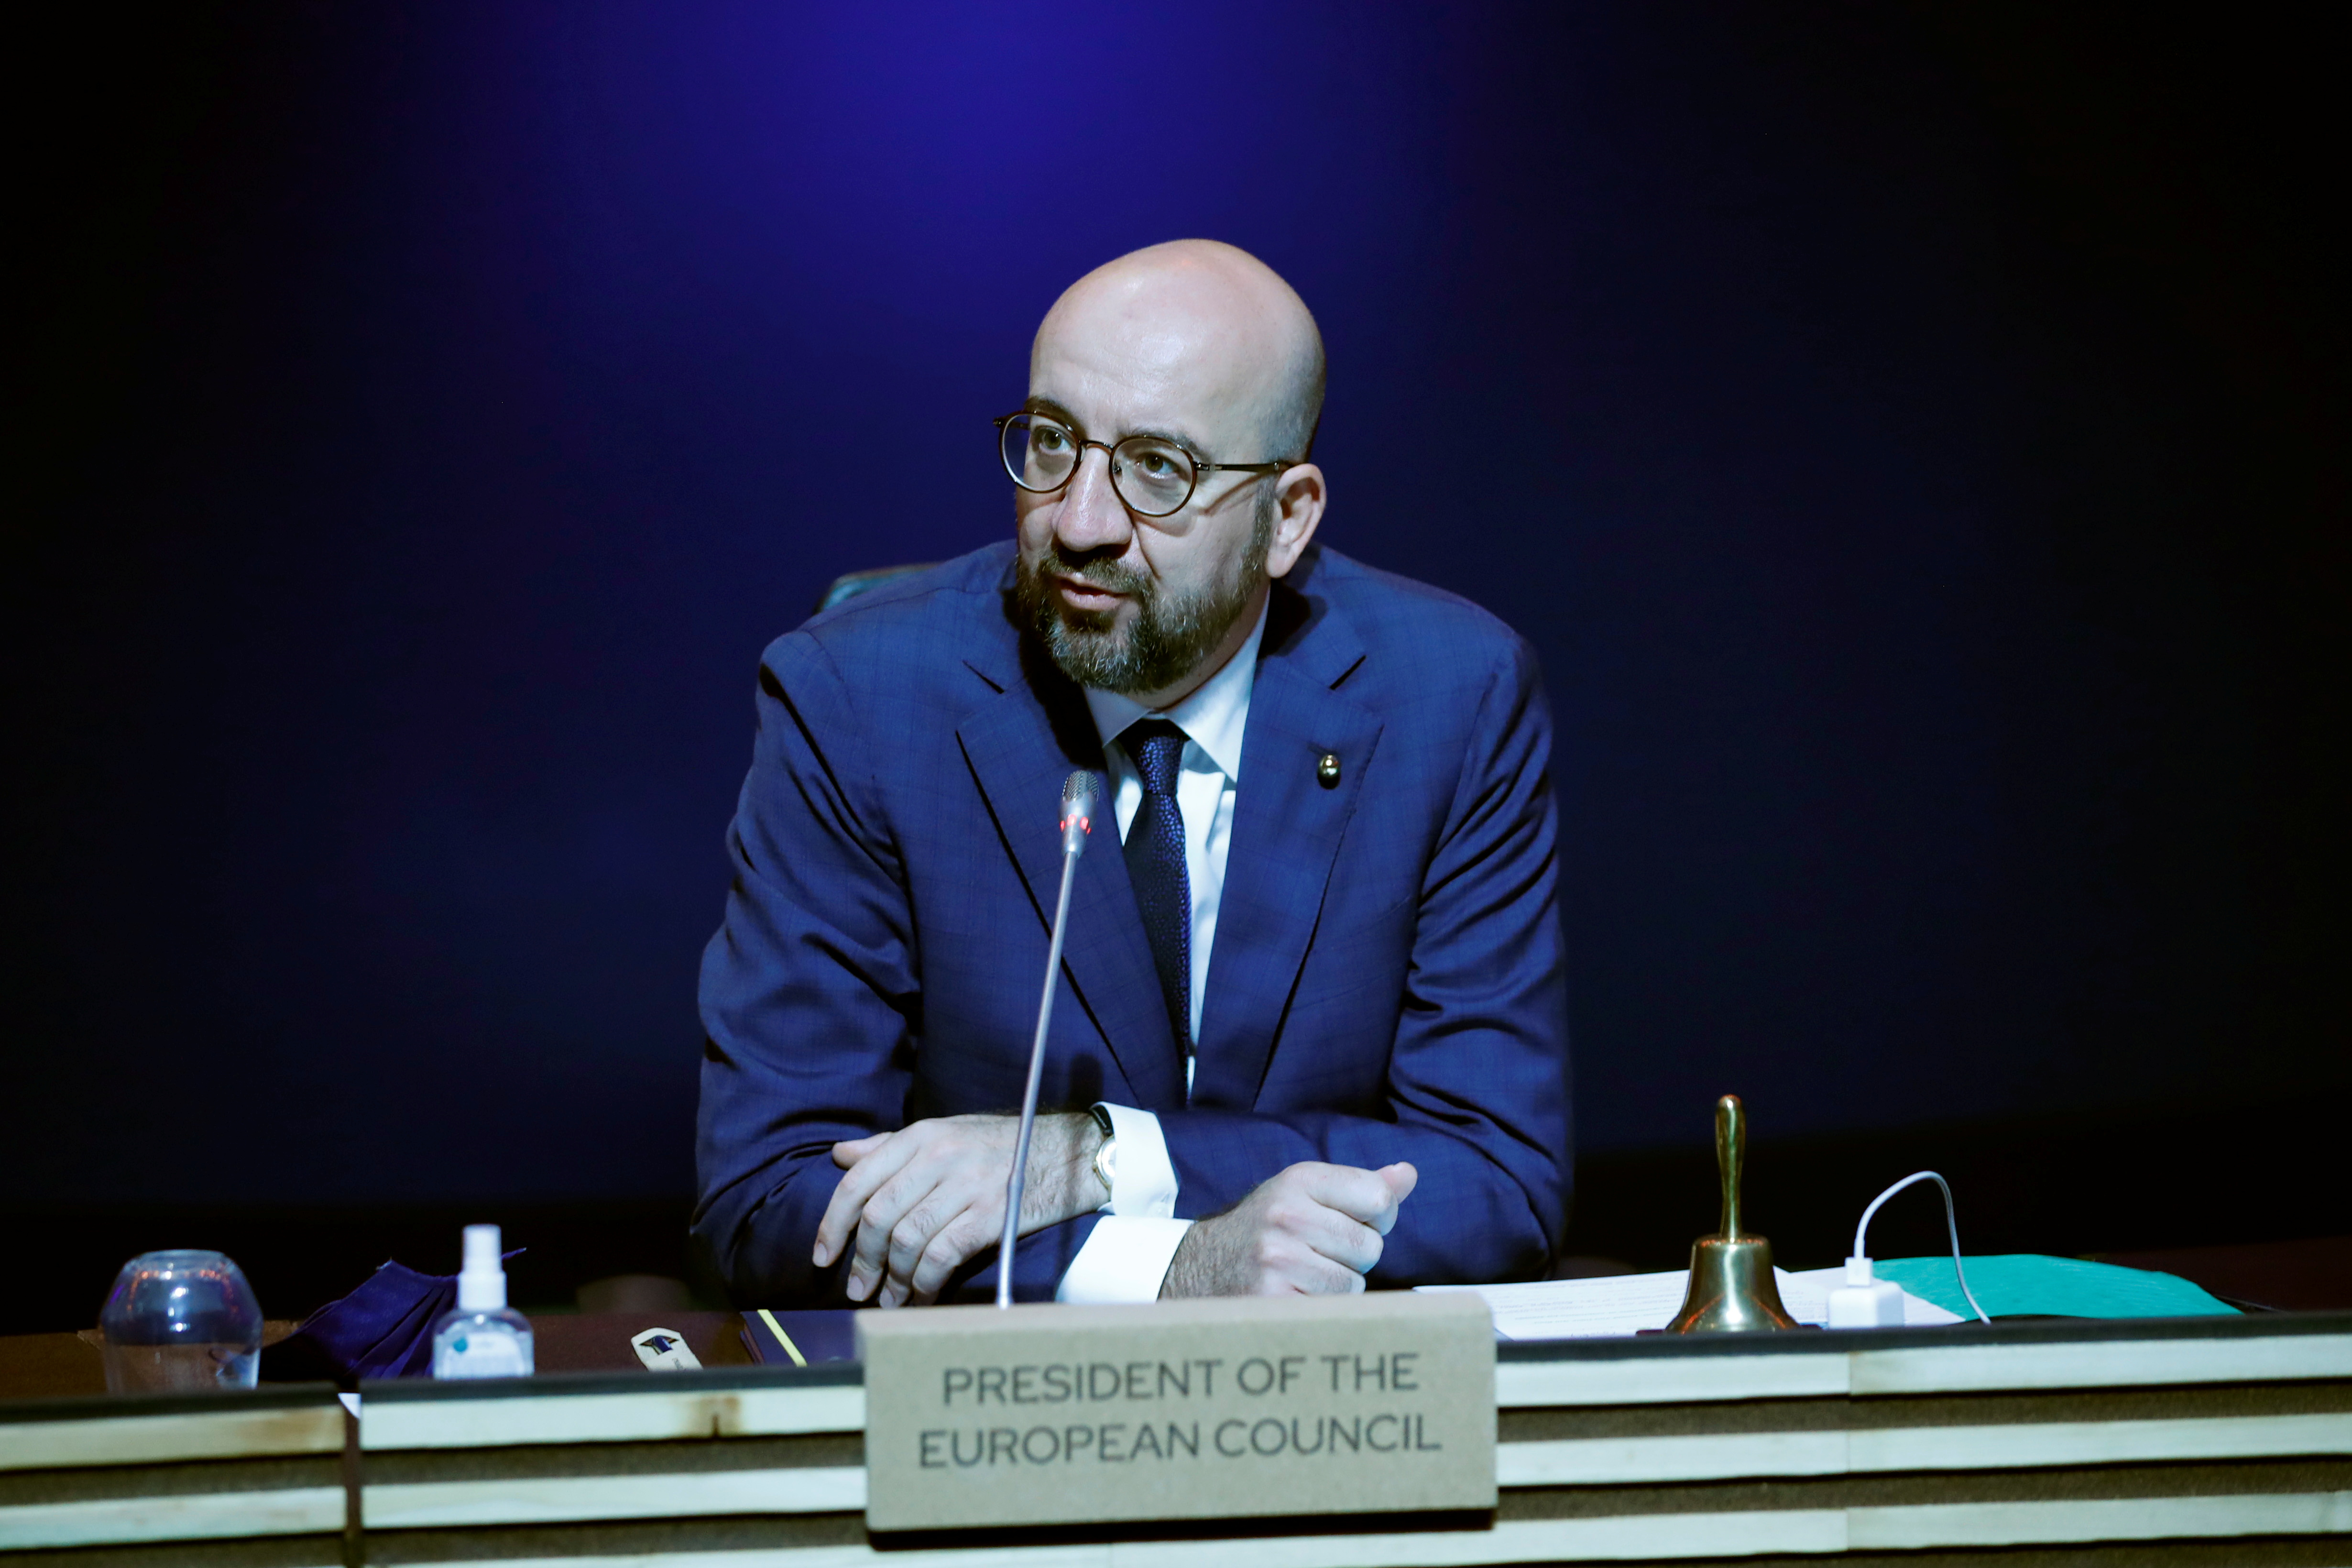 European Council President Charles Michel attends an EU summit round table meeting at the Crystal Palace in Porto, Portugal May 8, 2021. Francisco Seco/Pool via REUTERS